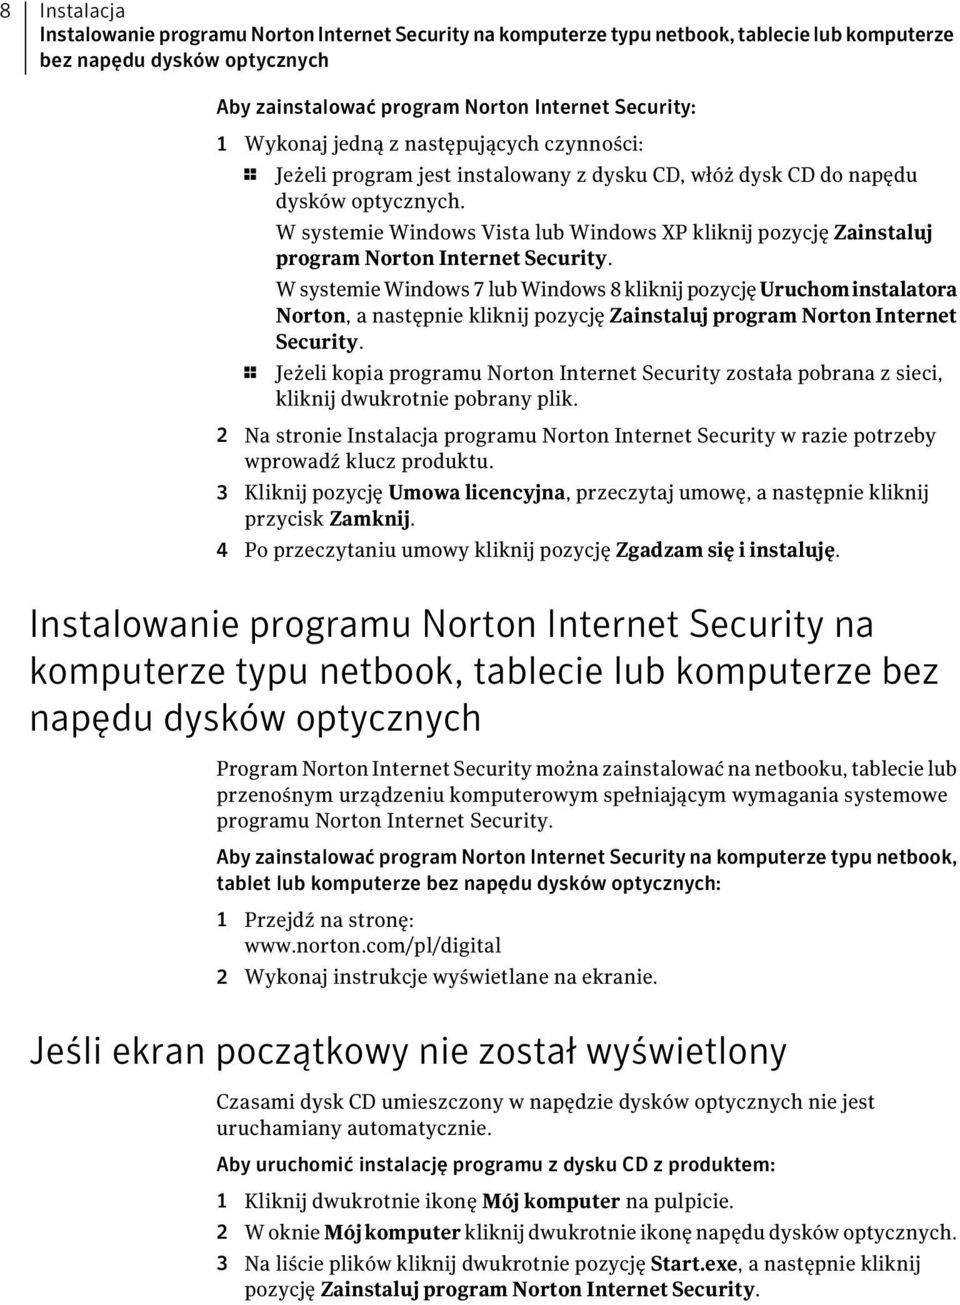 W systemie Windows Vista lub Windows XP kliknij pozycję Zainstaluj program Norton Internet Security.